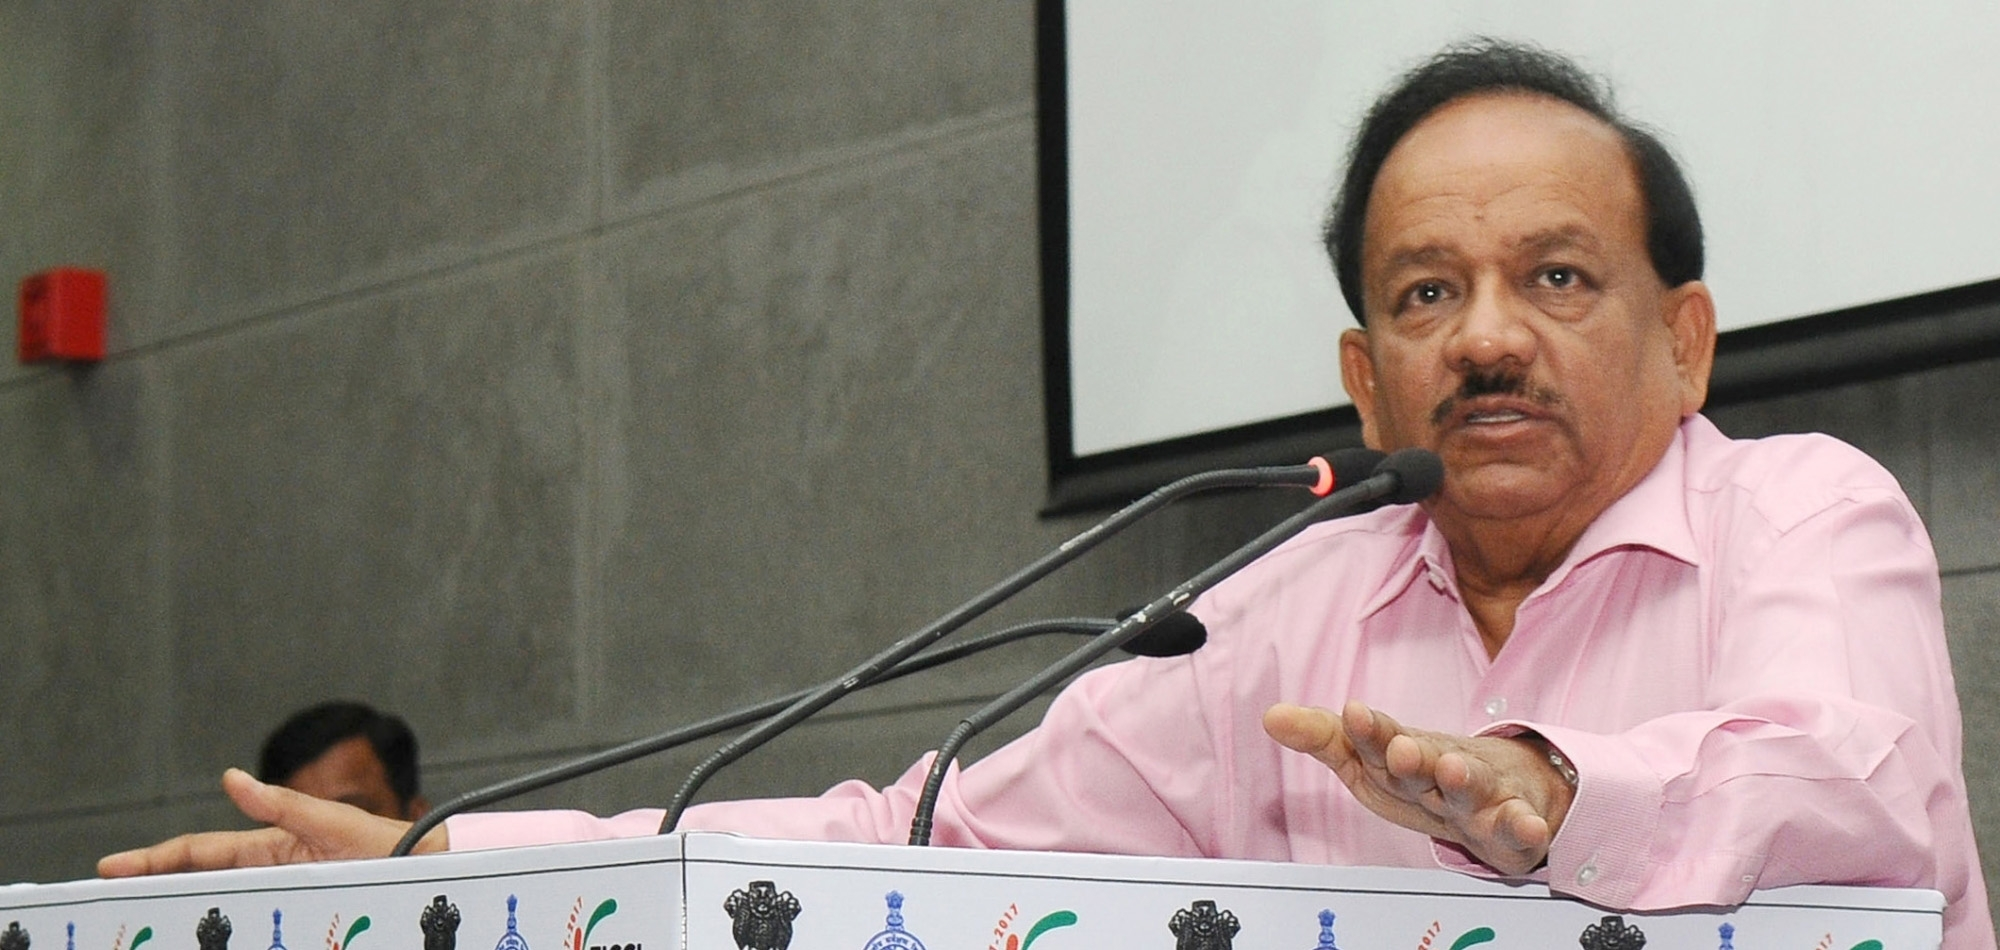 Vaccination big weapon in fight against Covid: Harsh Vardhan